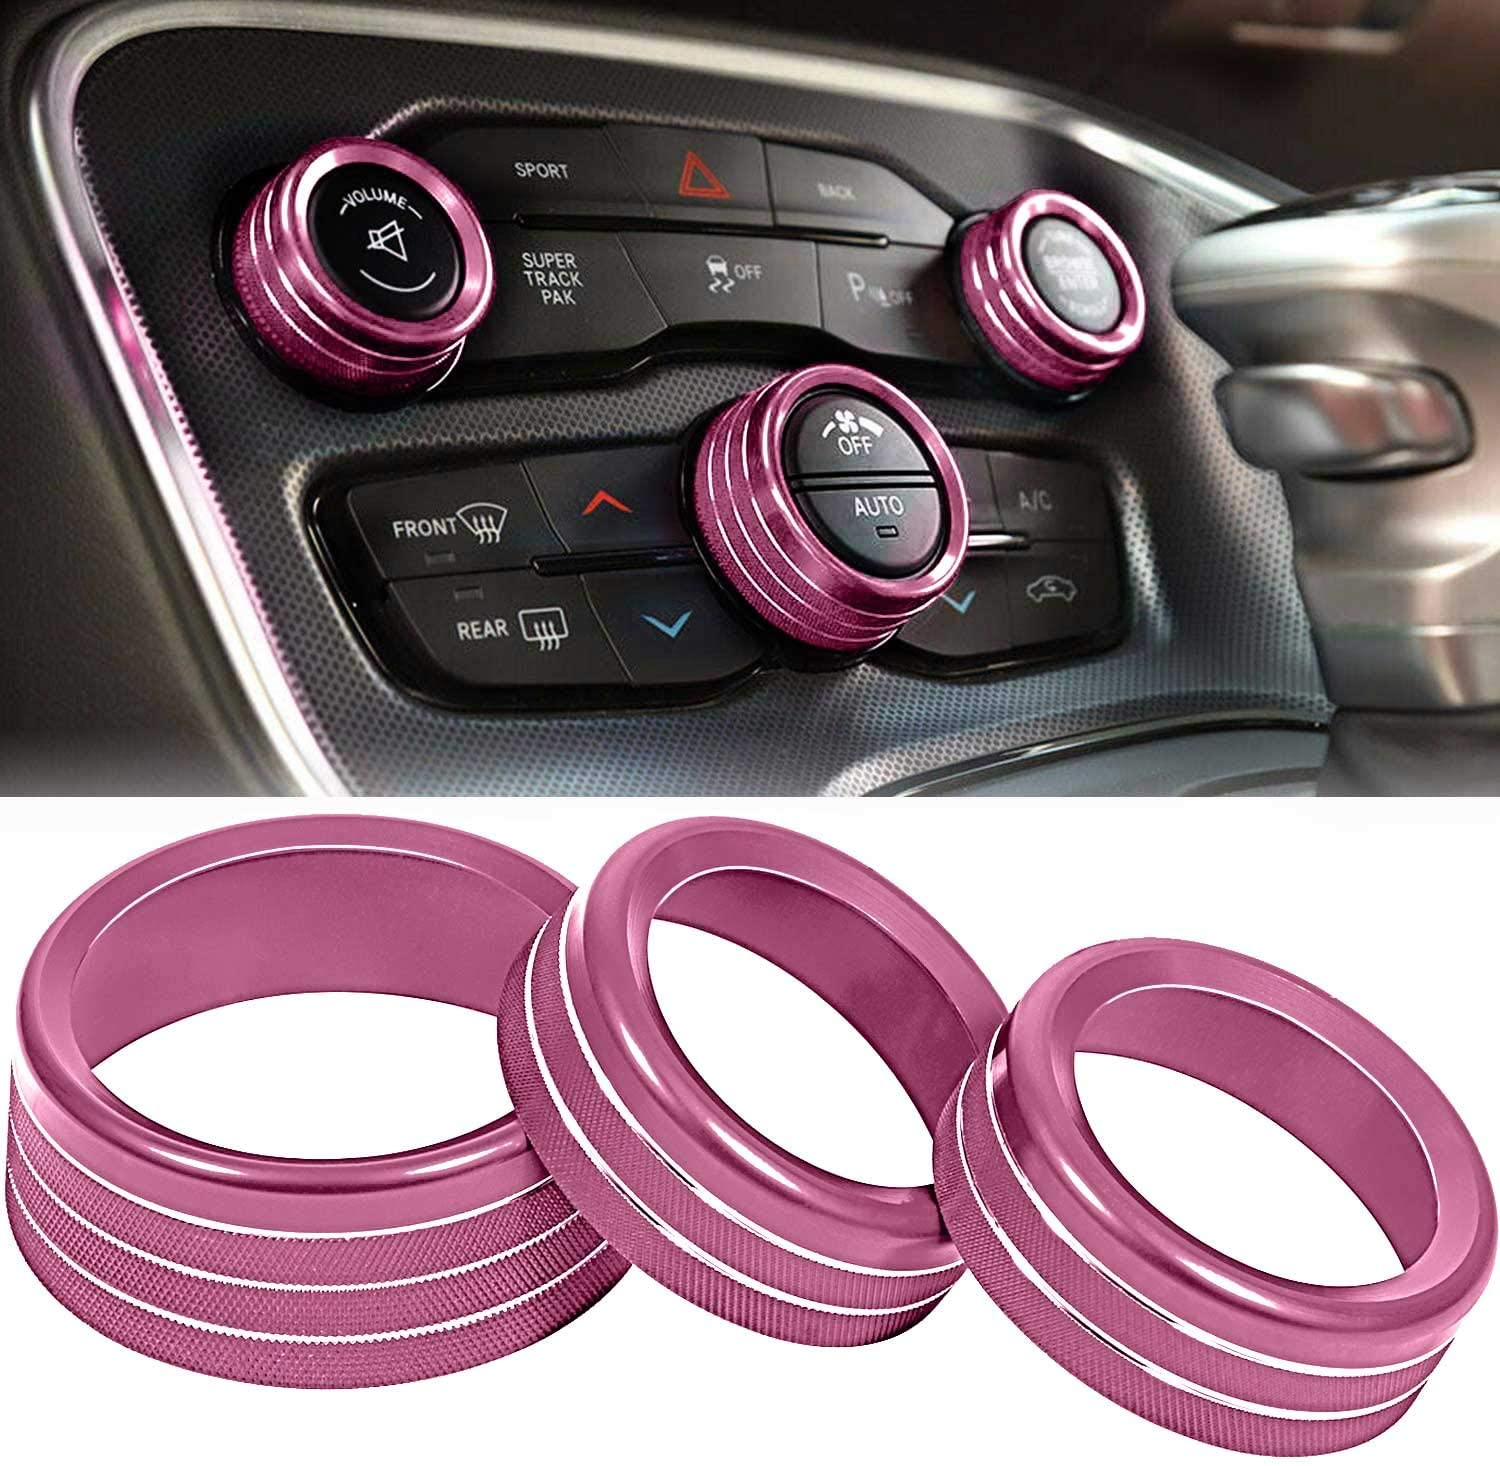 ToolEpic for Dodge Challenger Charger Accessories 2015-2020 - Decal Trim Rings Set of 3 - Aluminum Alloy Furious Pink - Air Conditioning Radio Volume Button Knob Cover, Perfect for Decoration